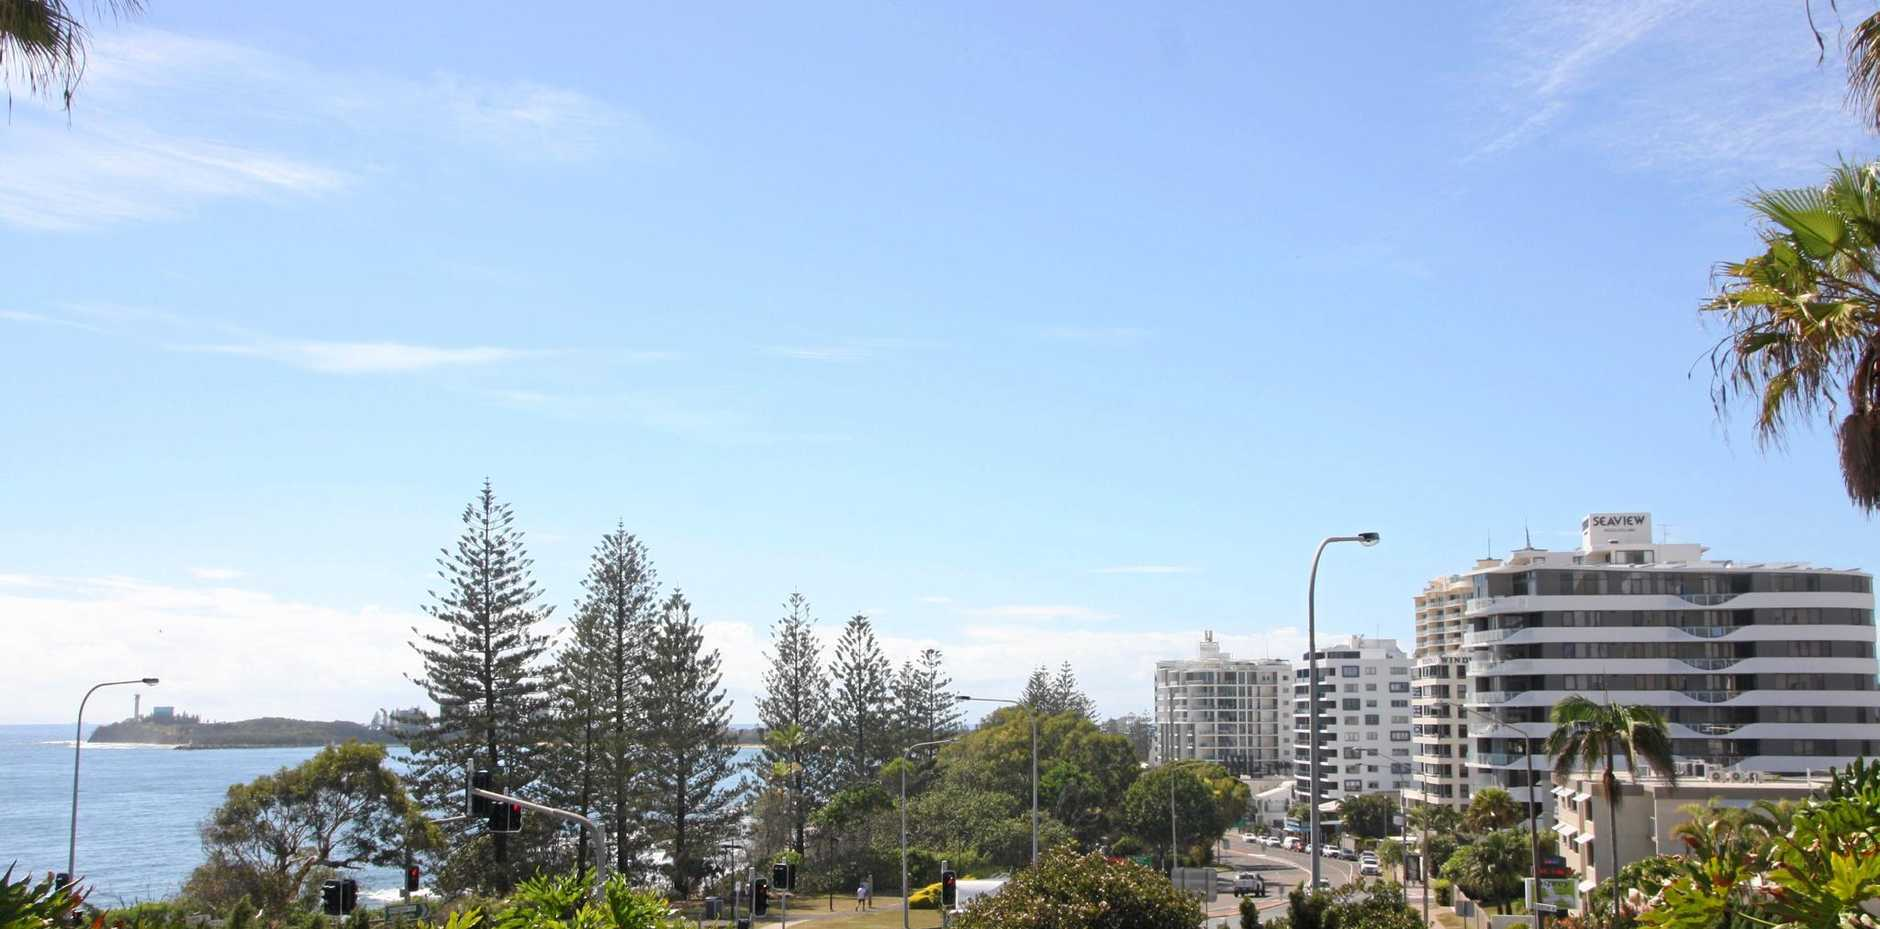 The Mooloolaba Esplanade is a changing landscape.